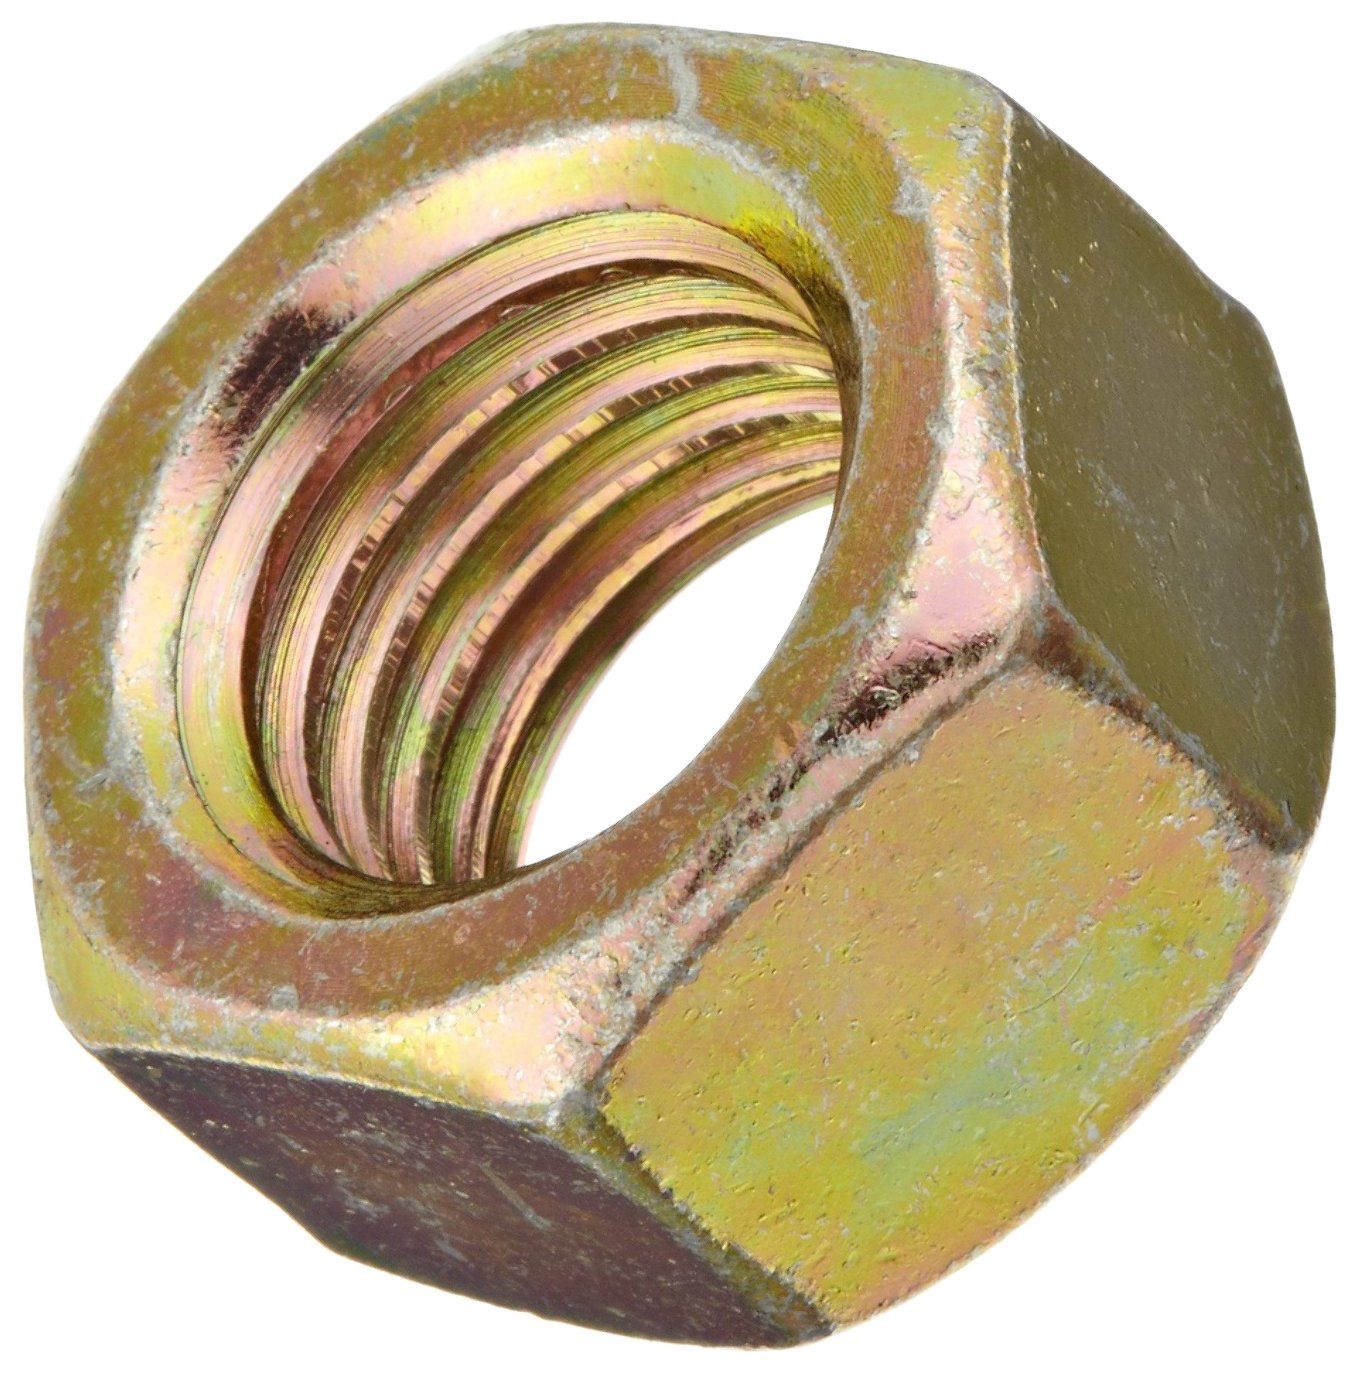 0.448 Height 1//2-20 Threads 0.866 Width Across Flats 0.448 Height 0.866 Width Across Flats Steel Hex Nut Pack of 50 Pack of 50 1//2-20 Threads Zinc Yellow-Chromate Plated Finish Grade 8 Continental-Aero 50FNFH8Y